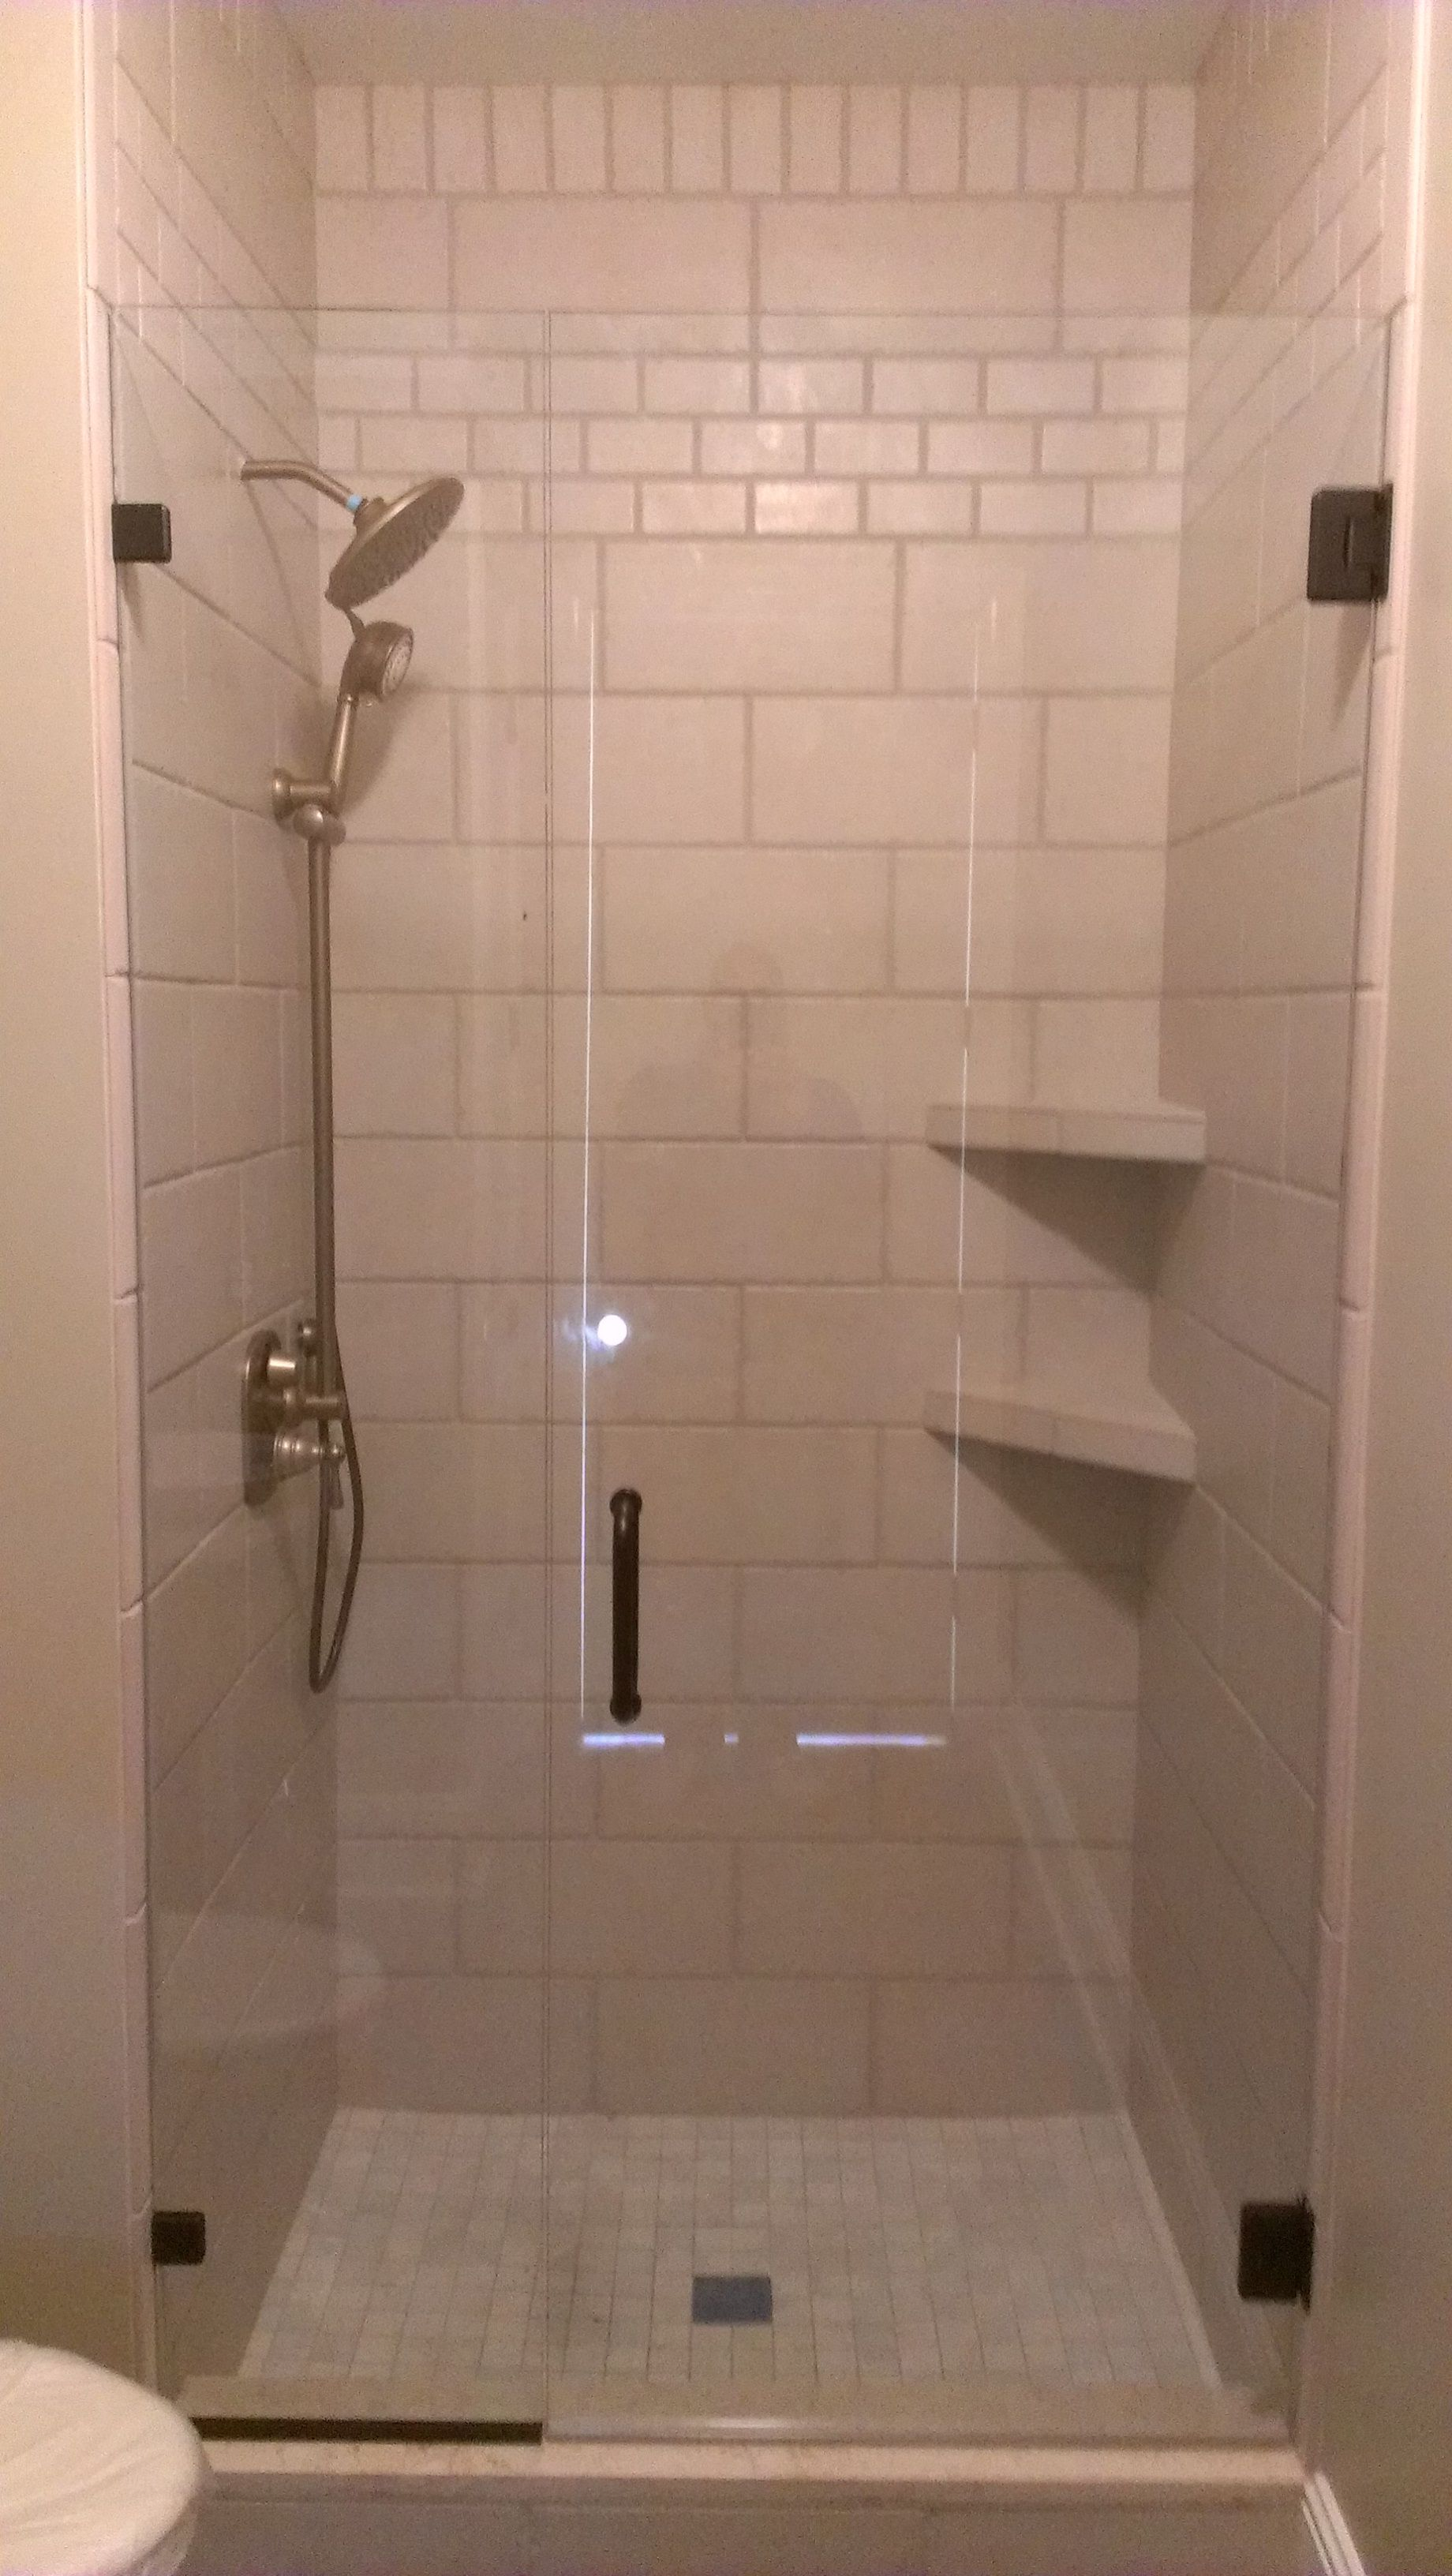 Tile Shower Tile Shower With Corner Shelves And Inlays #18 Tiled Corner  Showers   Spacedaway